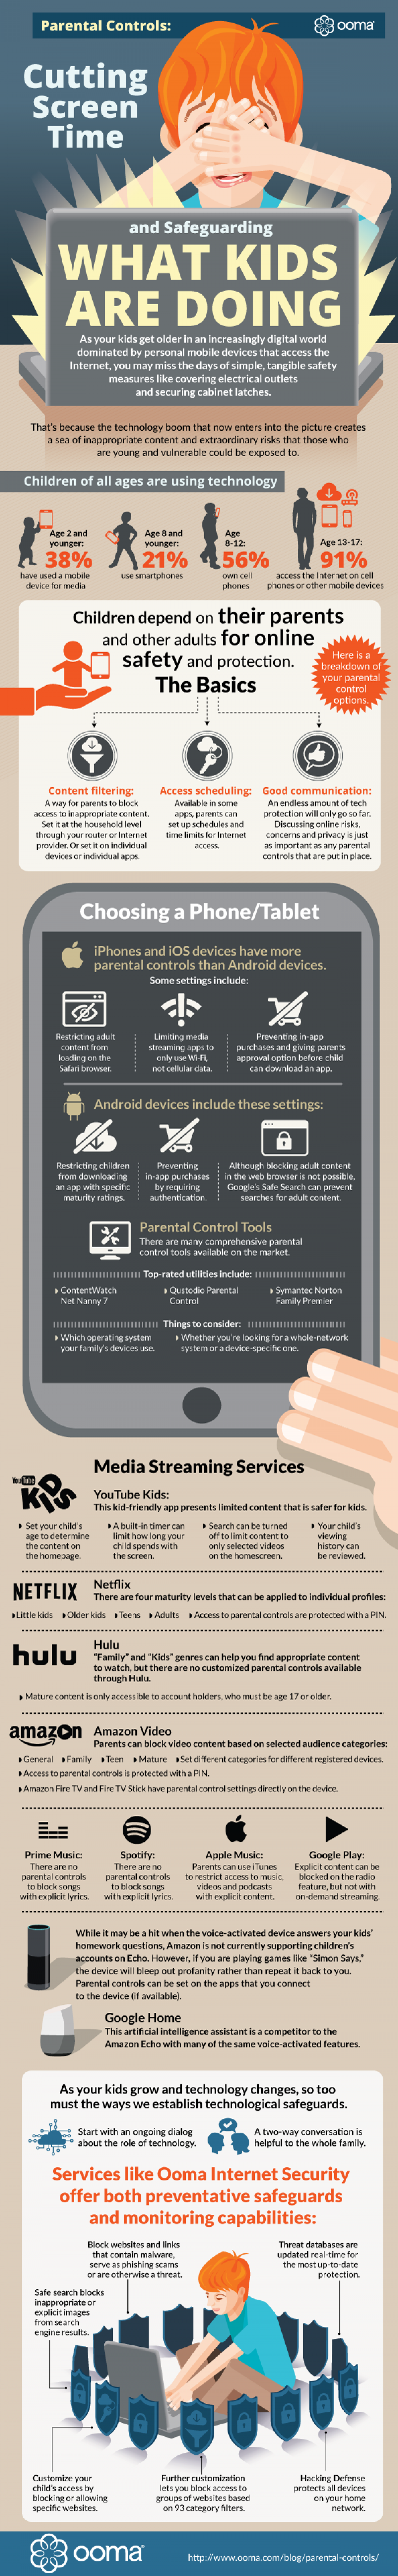 Parental Controls: Cutting Screen Time and Safeguarding What Kids Are Doing Infographic